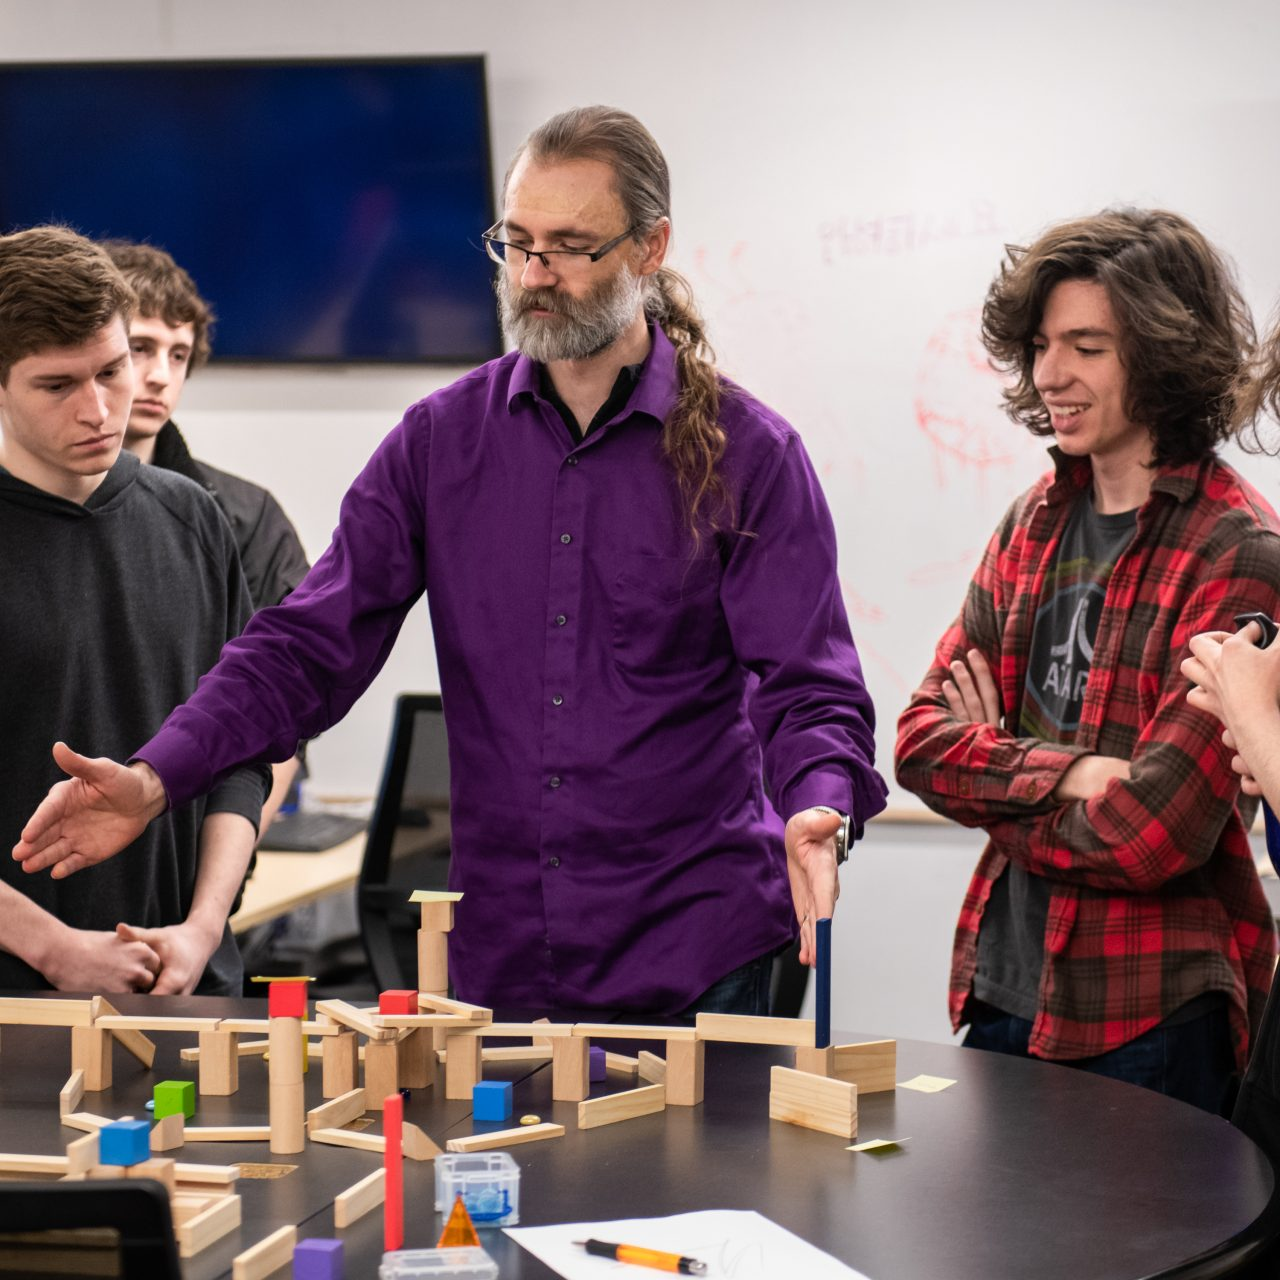 3 students responding to a professor who is gesturing towards blocks on a table